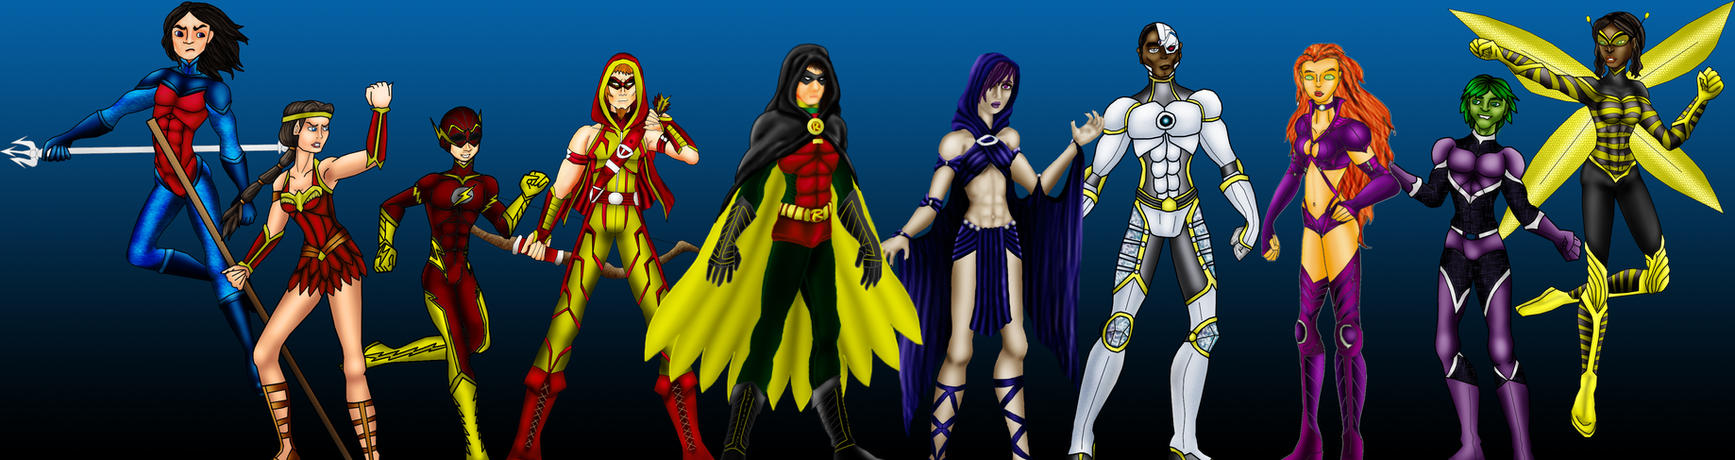 Teen titans 2009 that